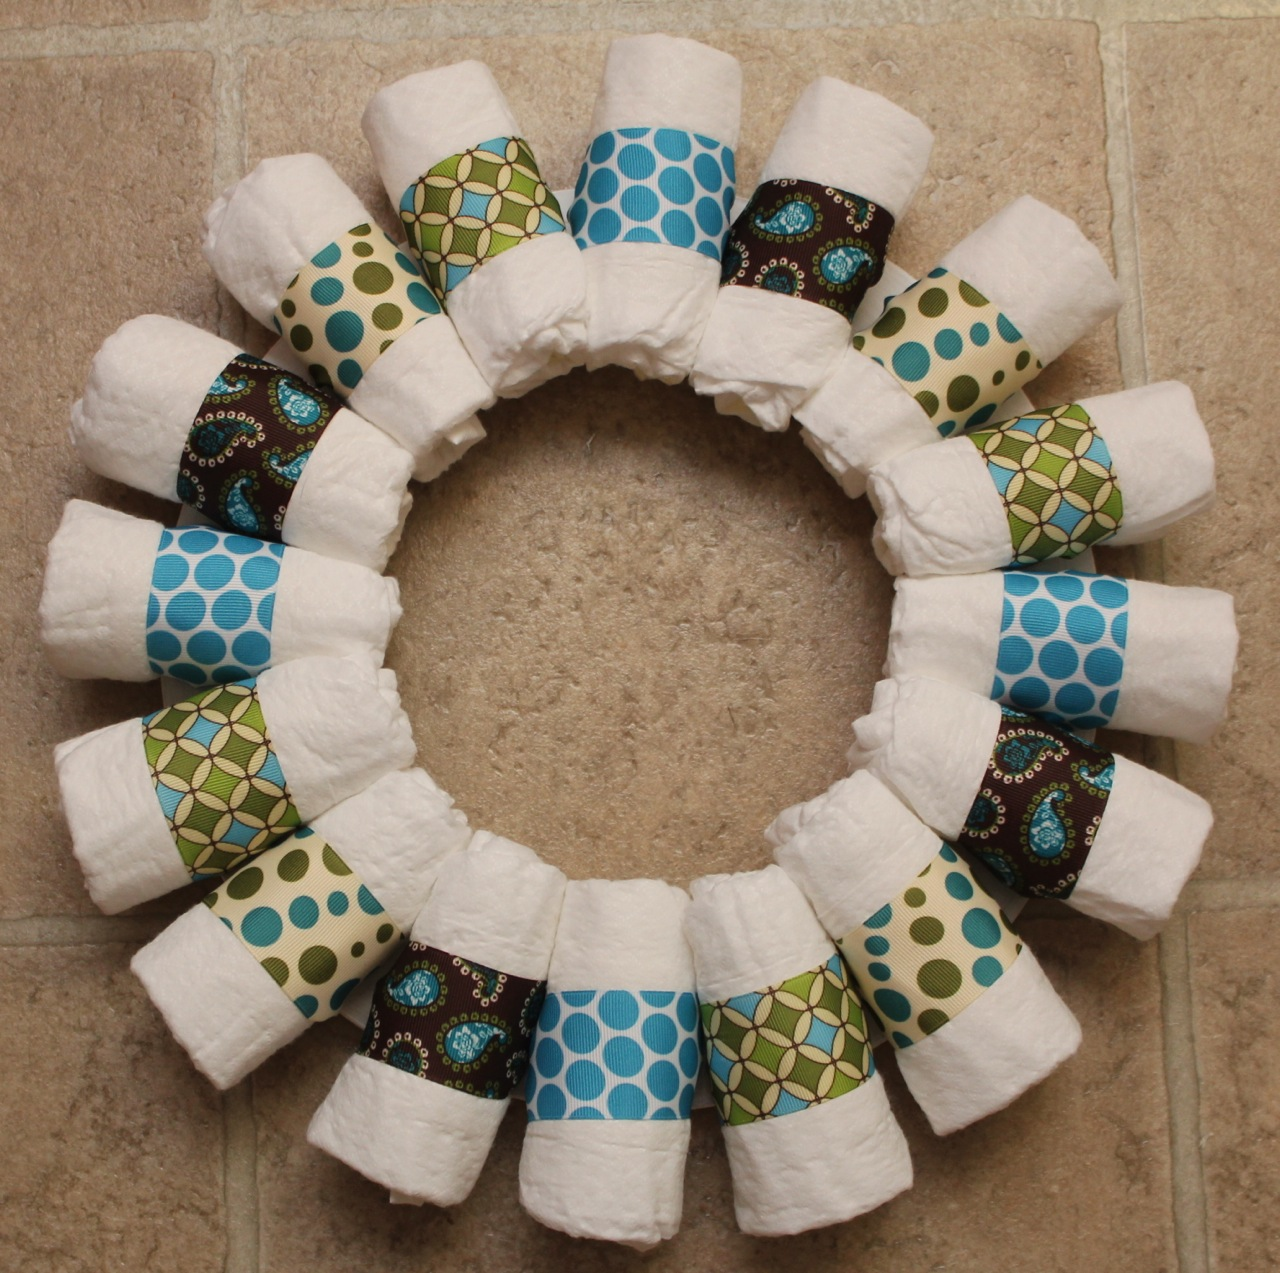 Baby Shower Wreath Images ~ Sew in love diaper wreath tutorial